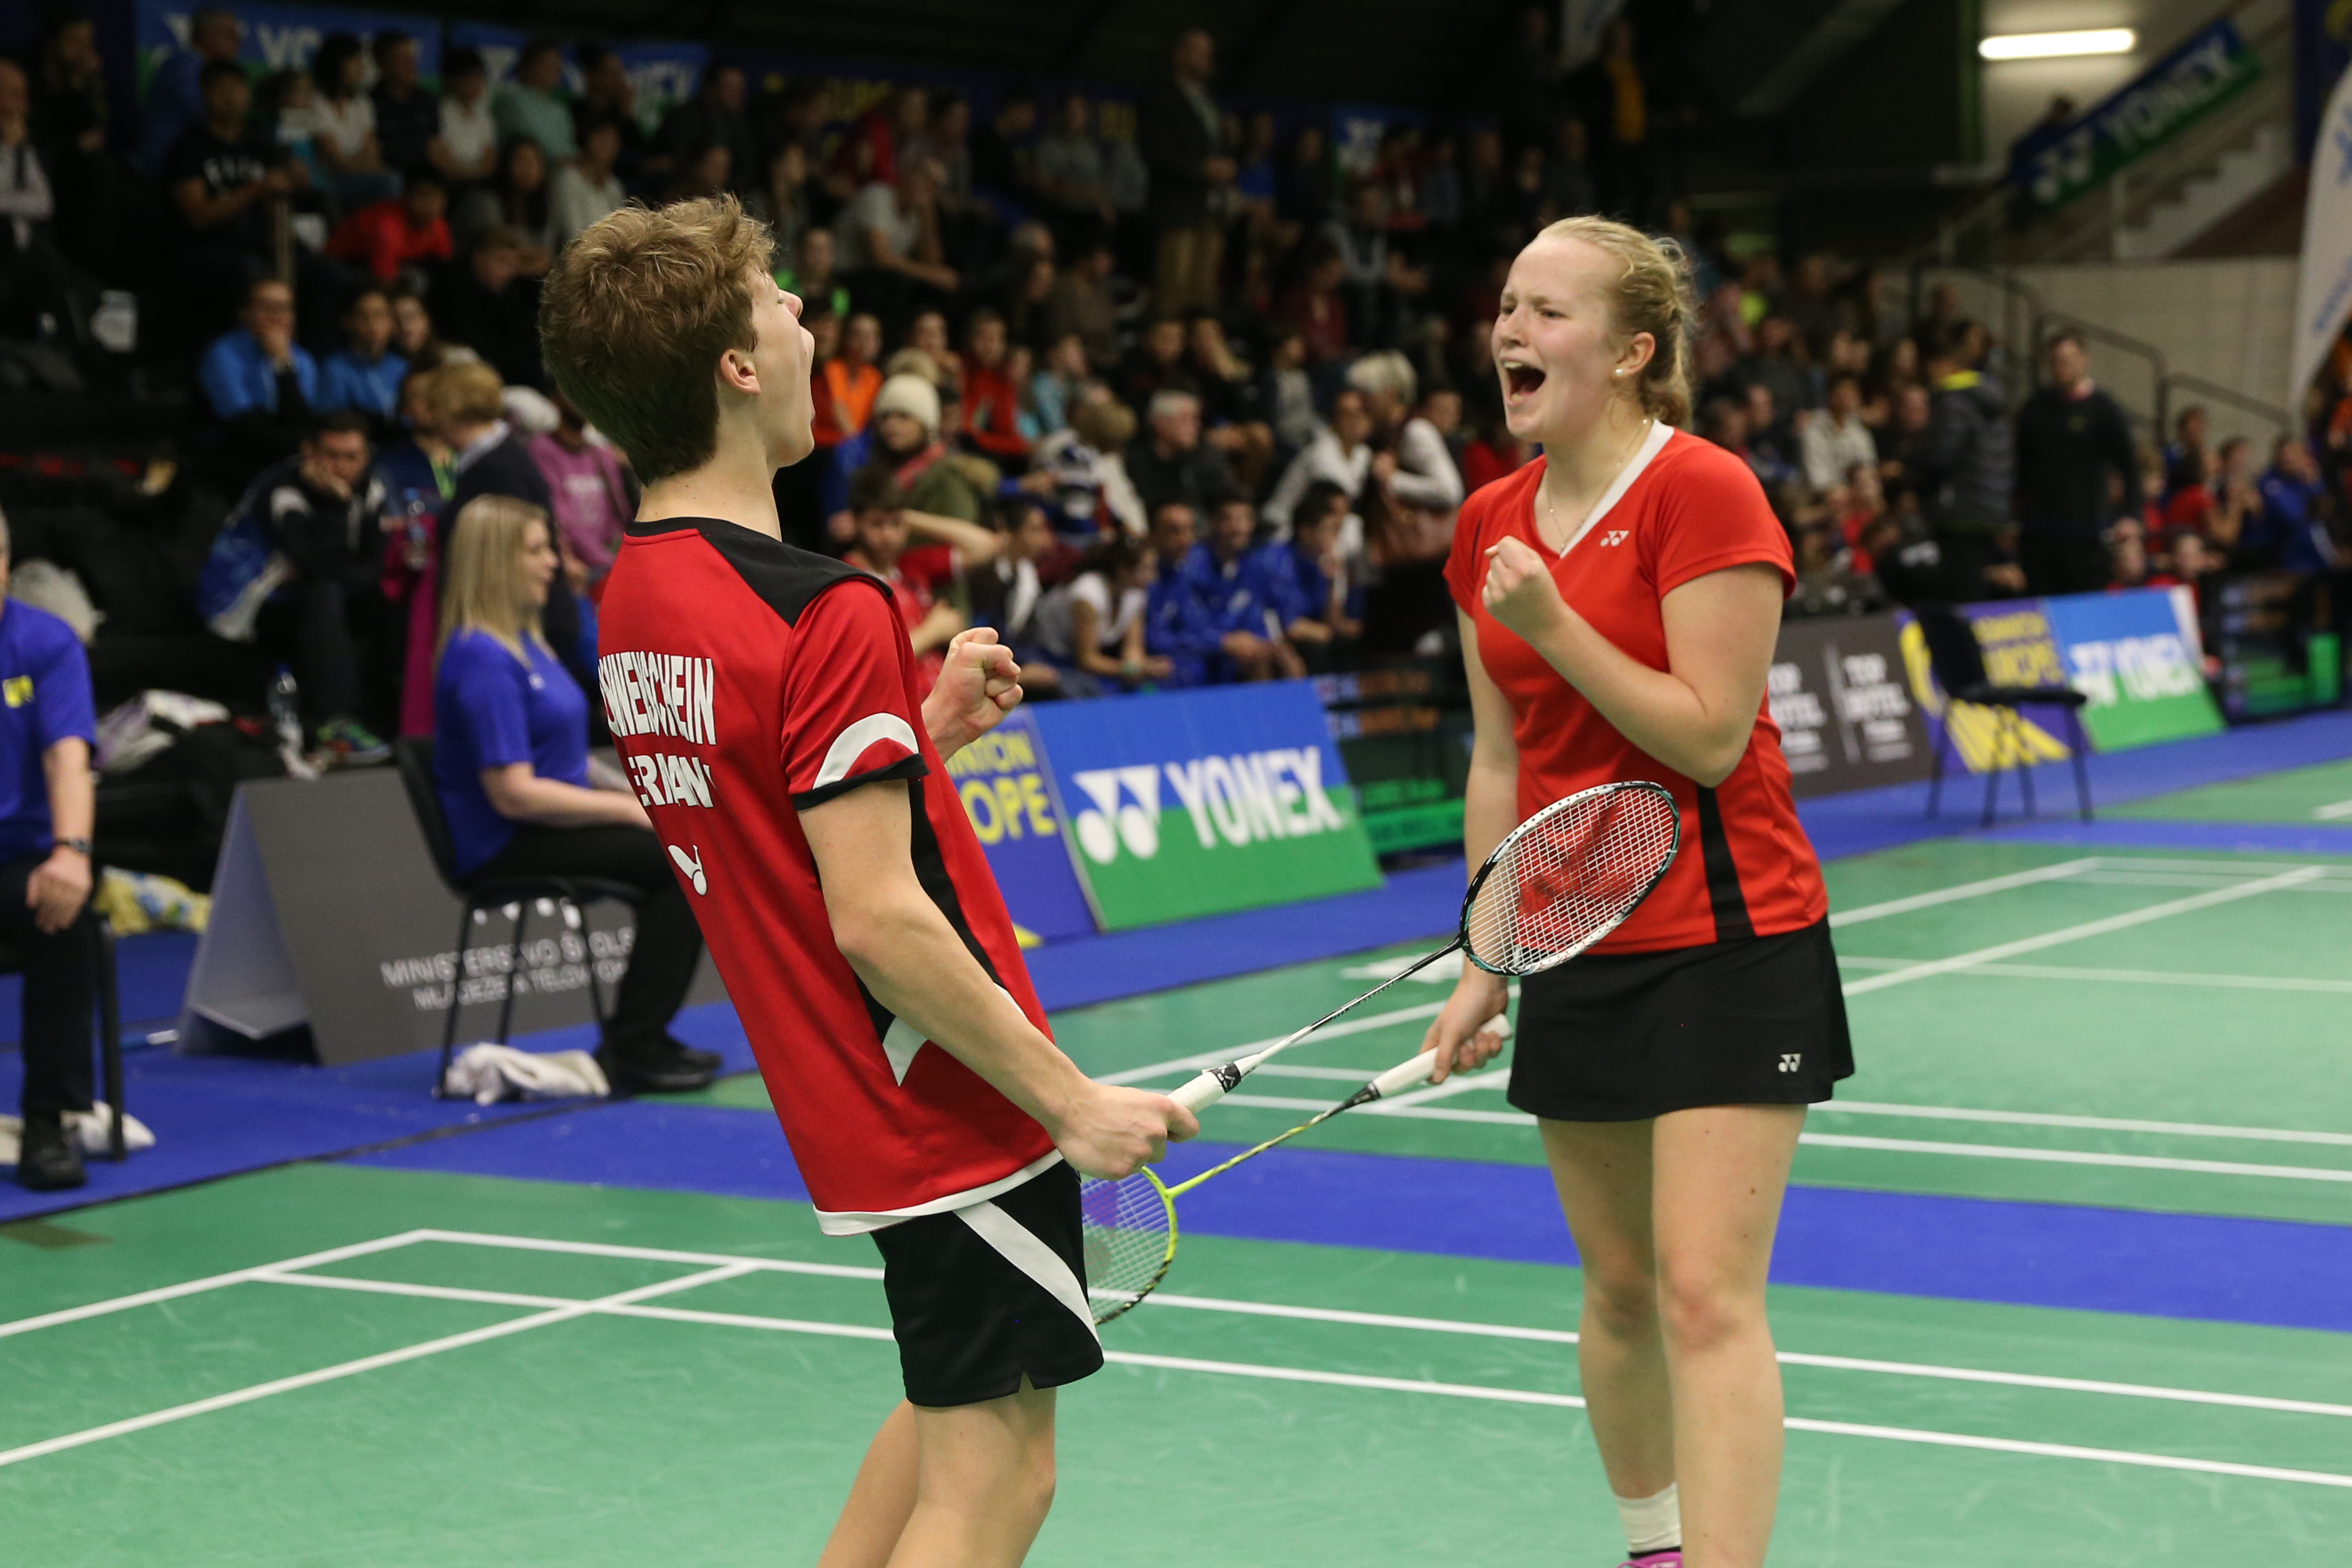 BadmintonPeople News from the clubs